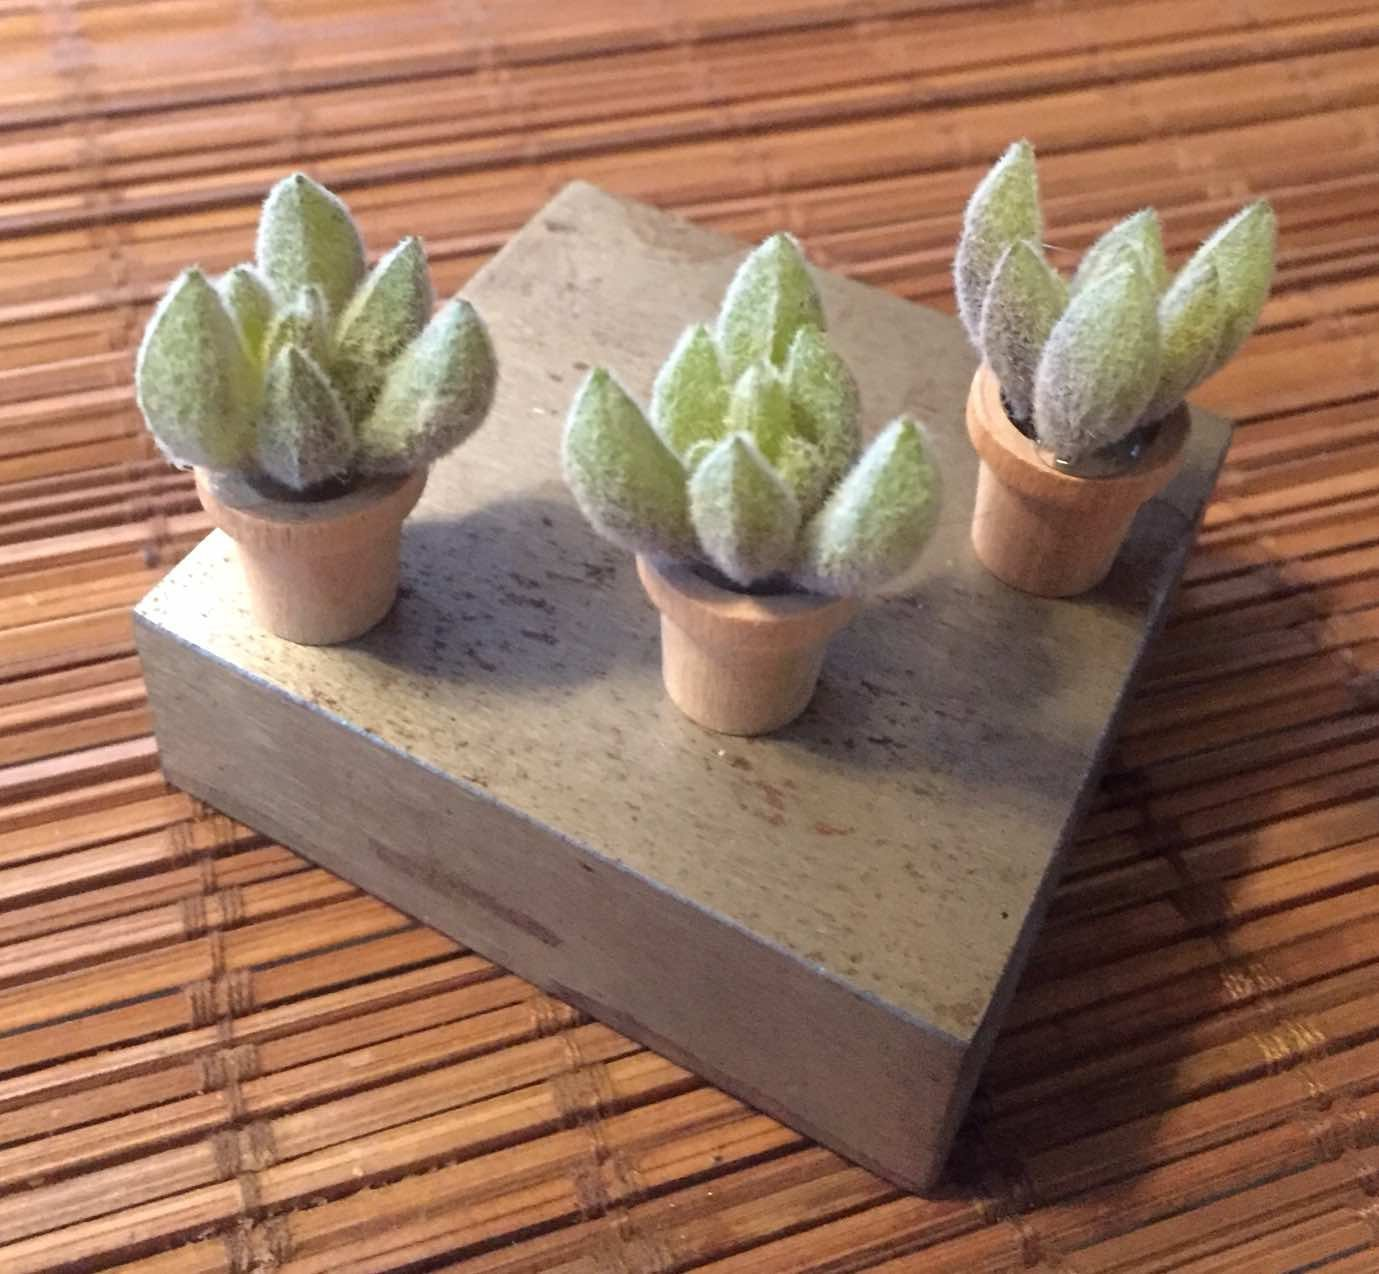 Artificial succulents set of 3 in terra cotta pot, fairy garden supplies, miniature garden accessories